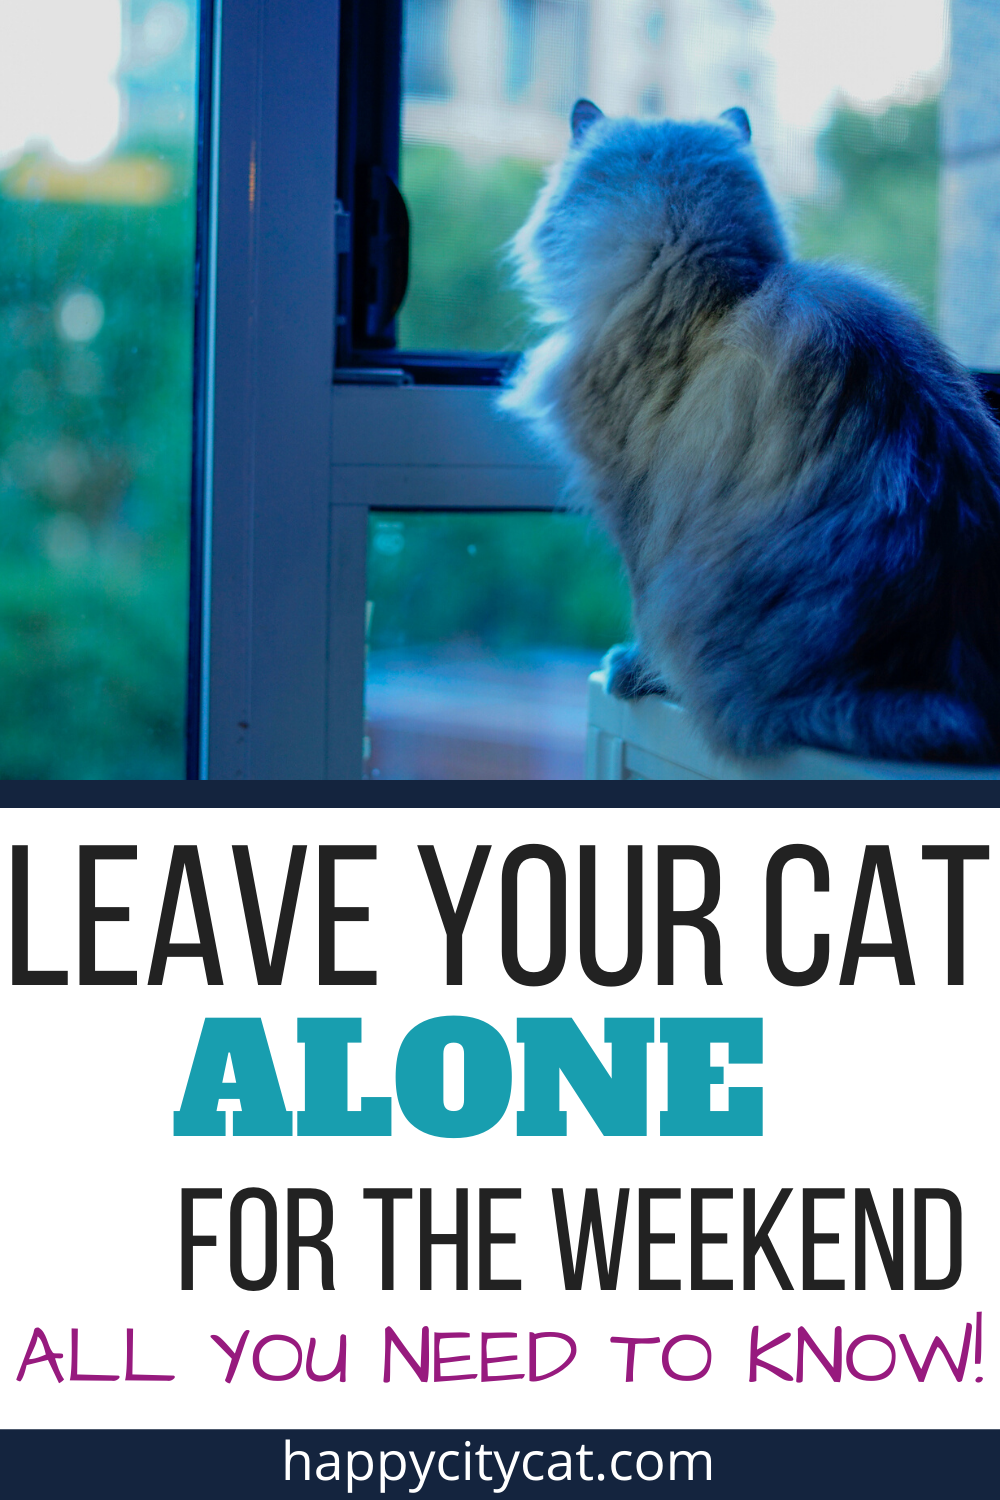 Leave Cat Alone For Weekend - All You Need To Know